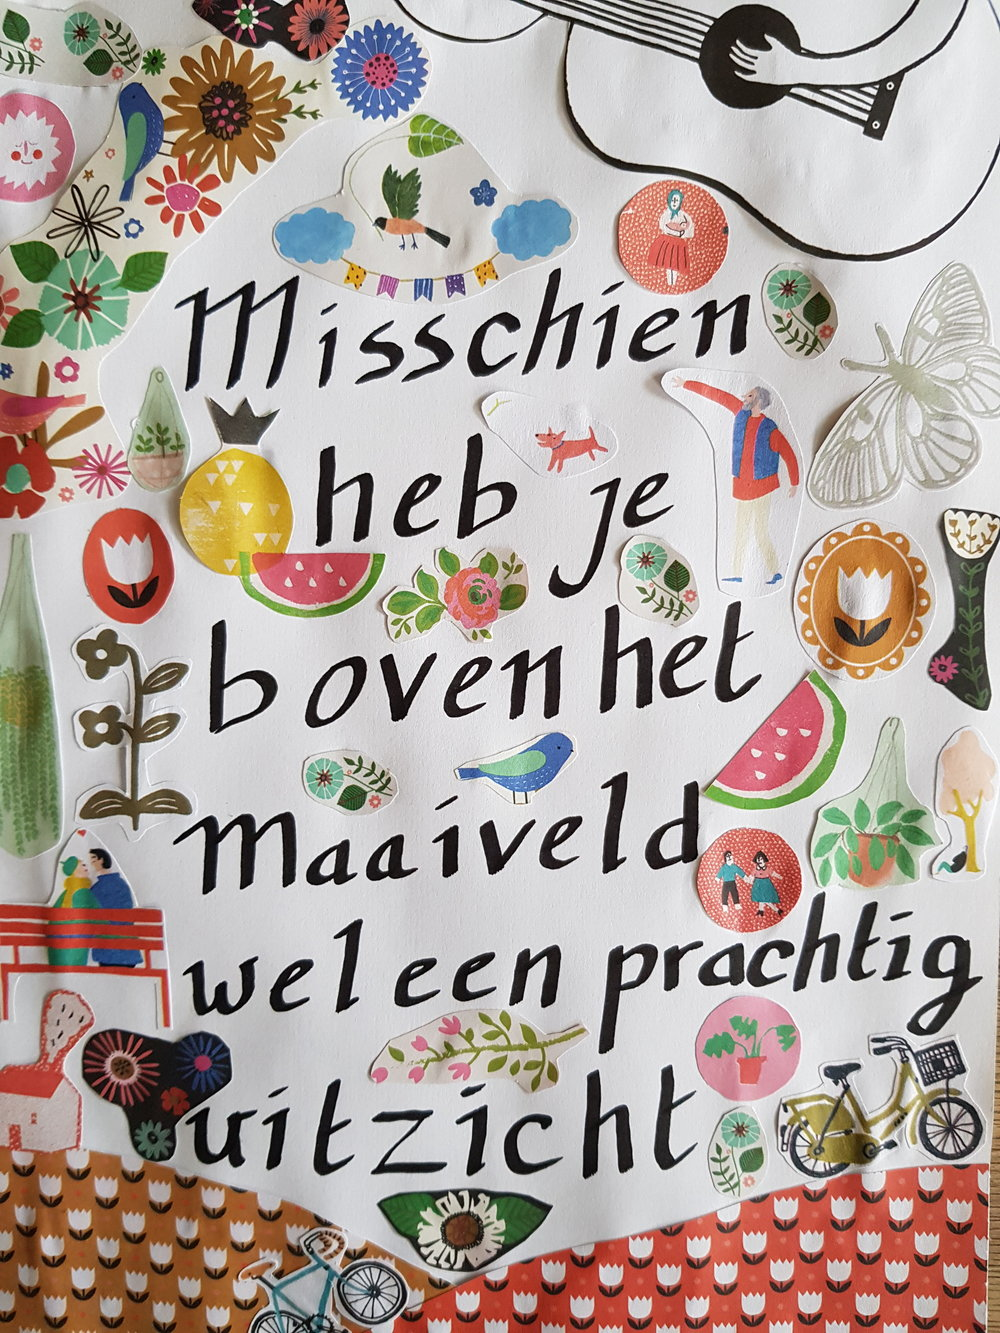 quote maaiveld.jpg